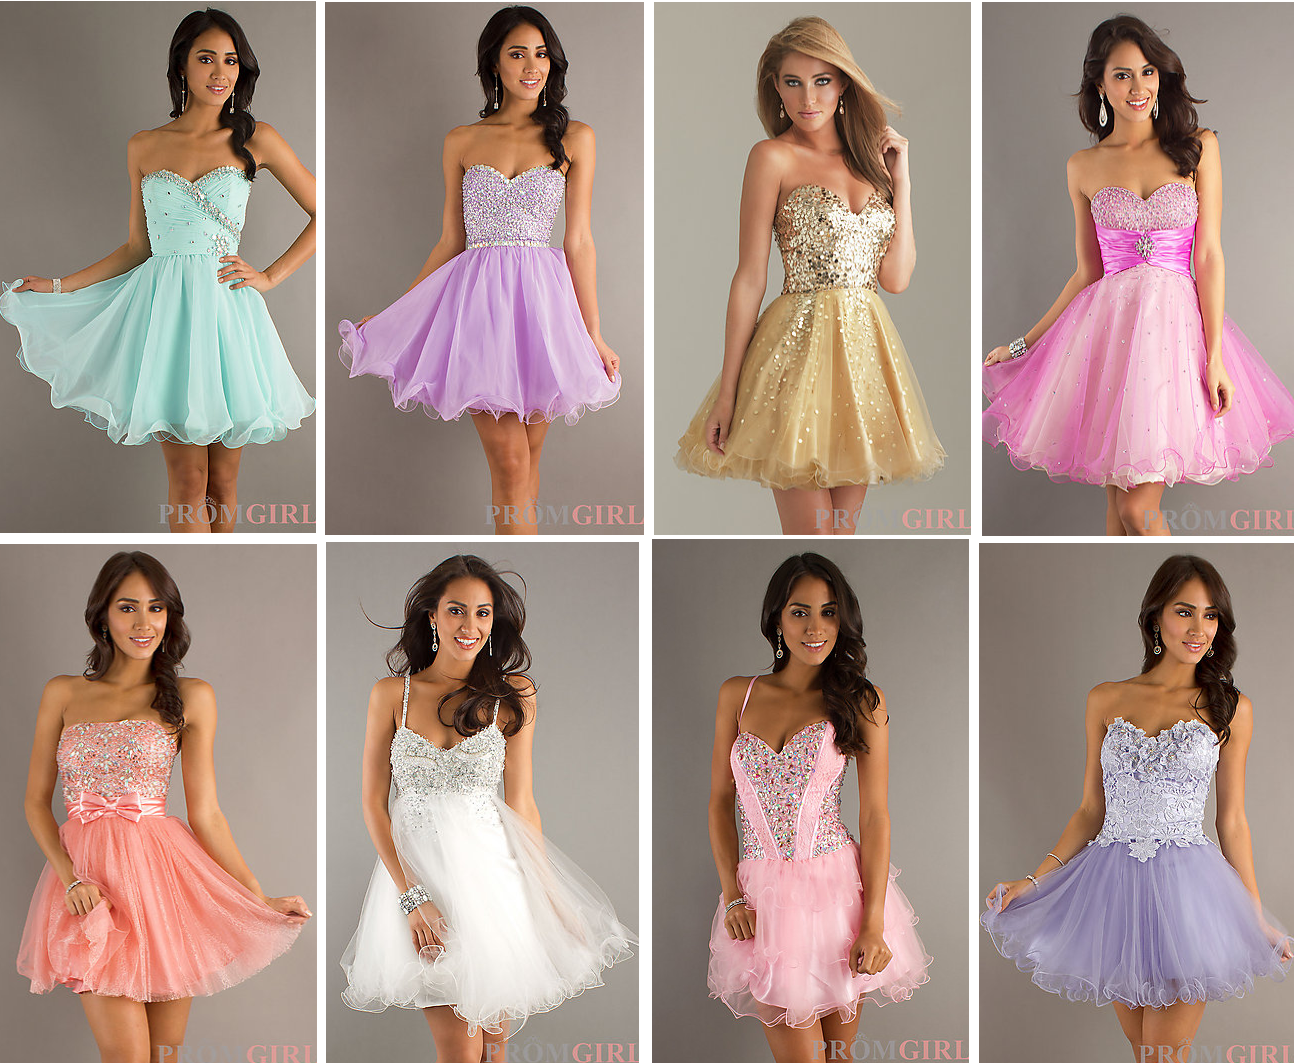 Cuteshortdressesforteens girls guide to life cute prom